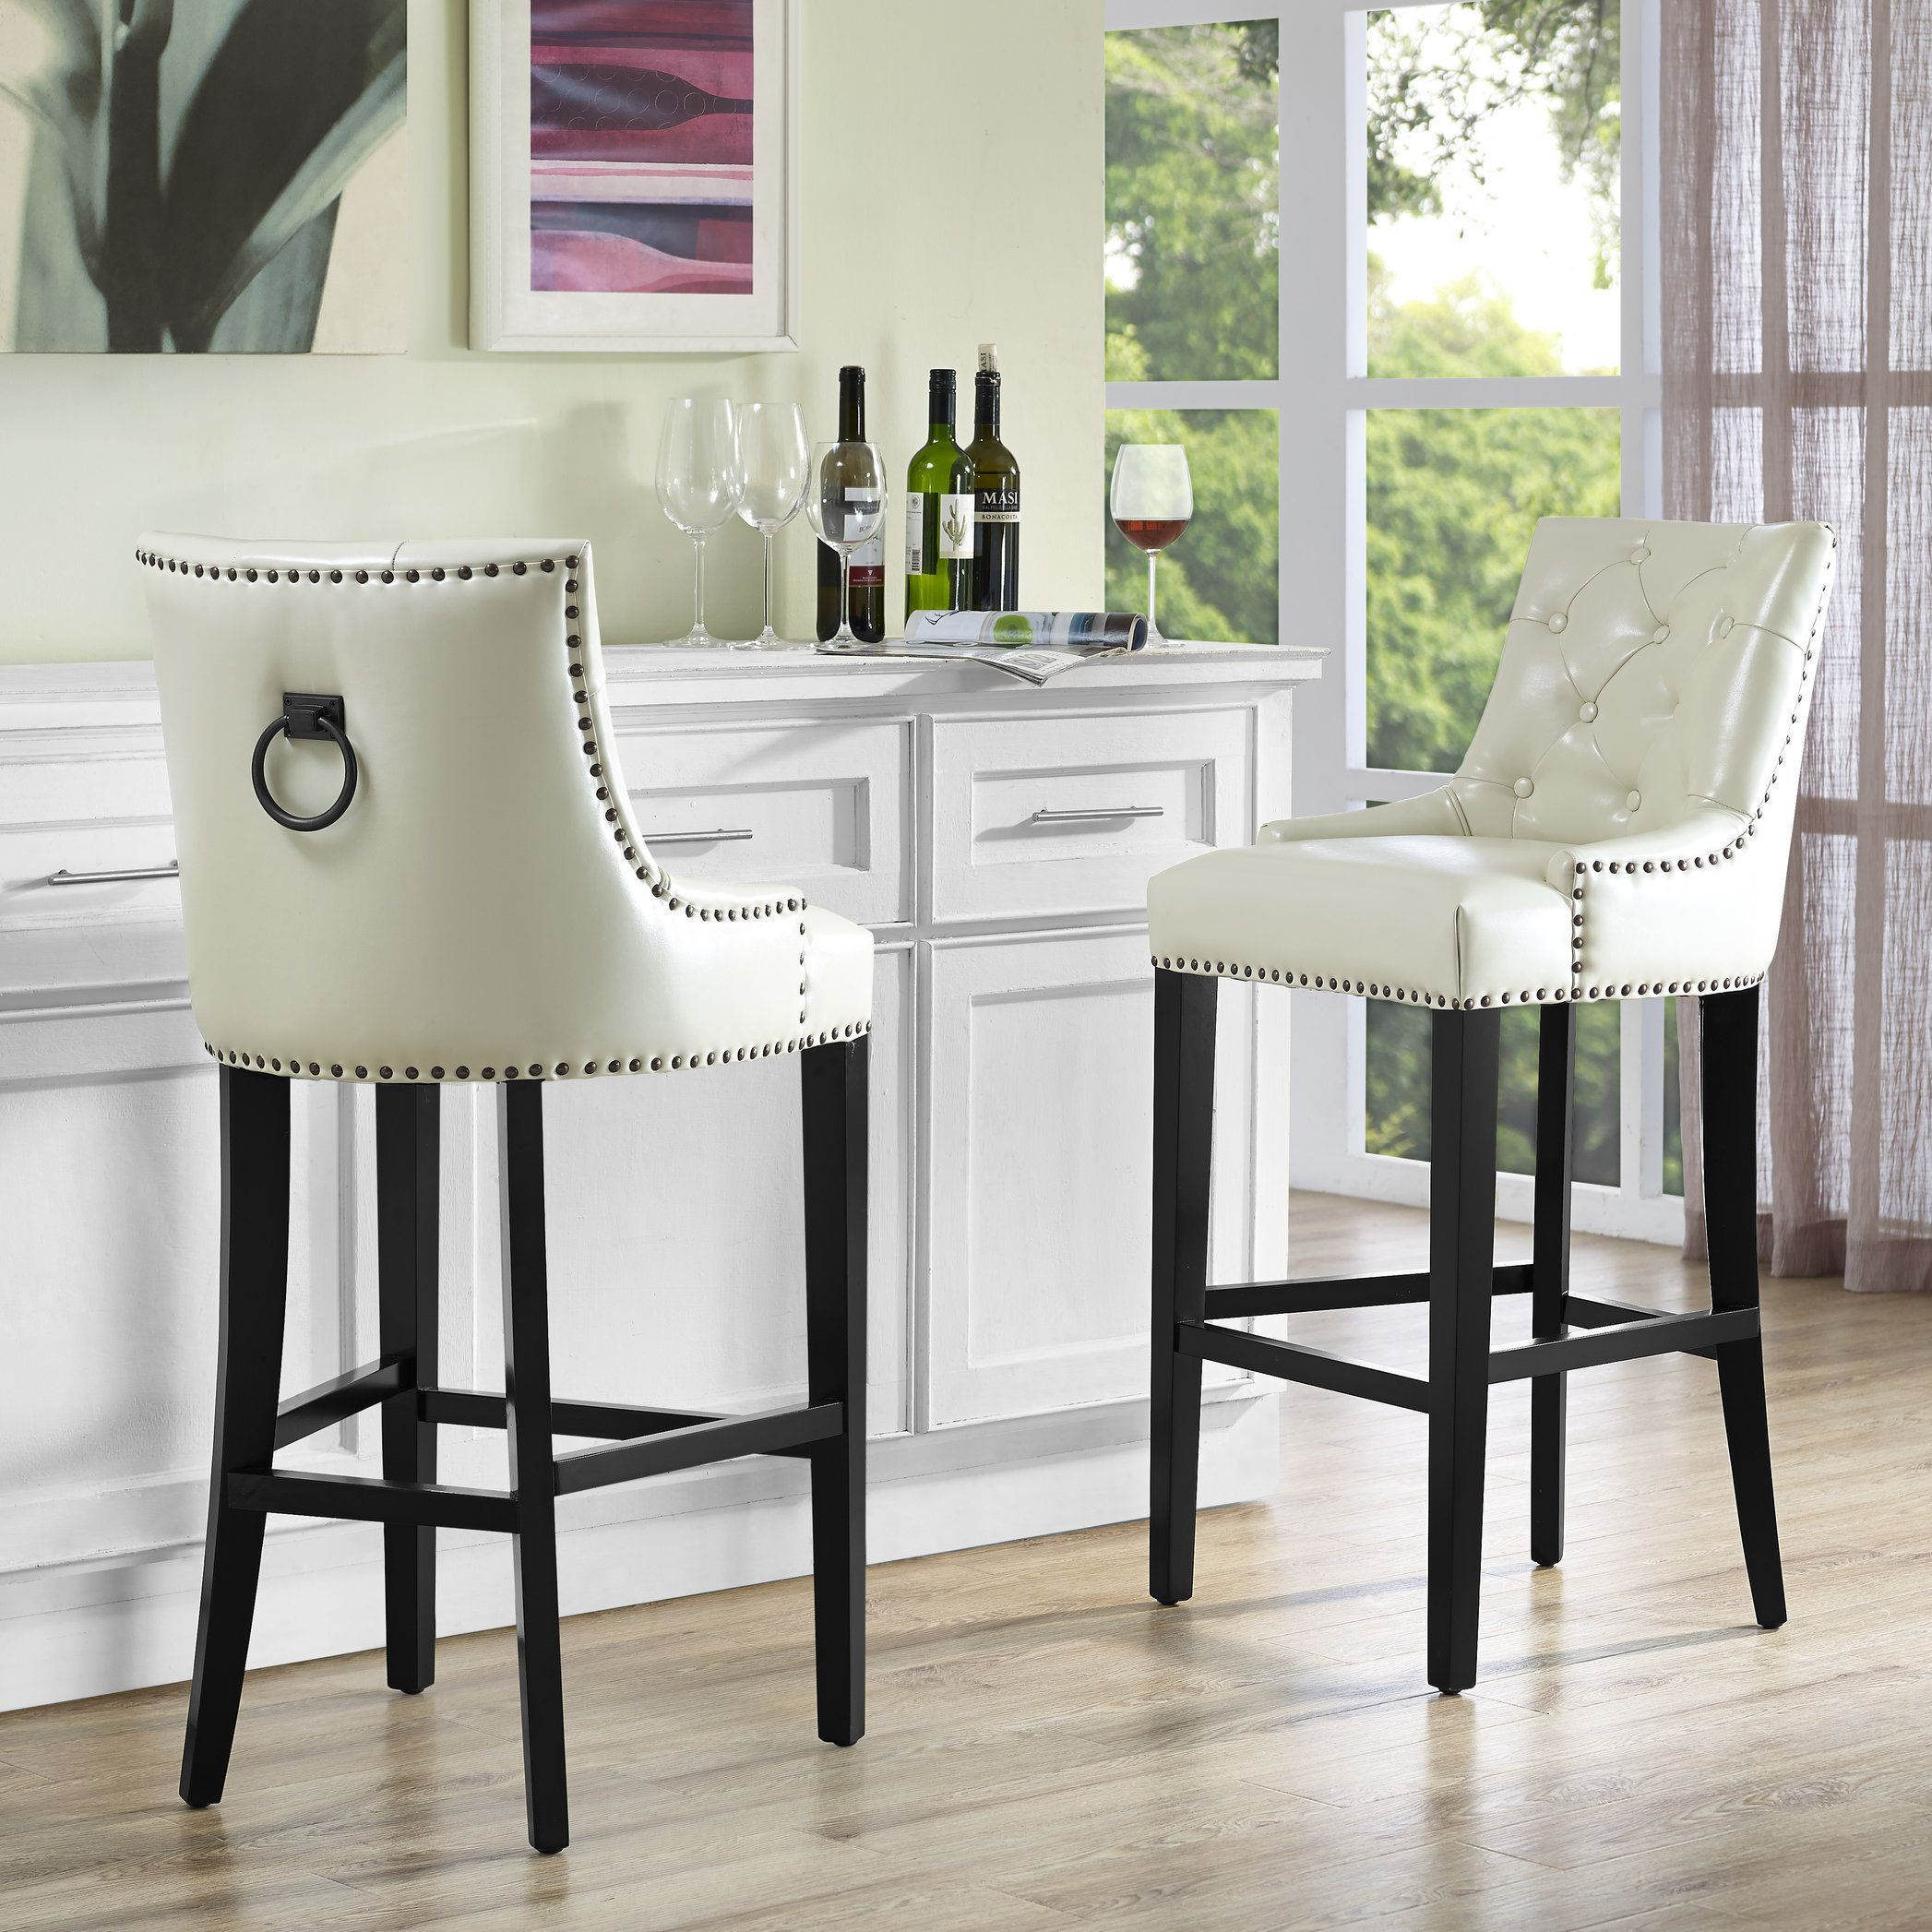 Image Result For Nail Head Swivel Counter High Bar Stools